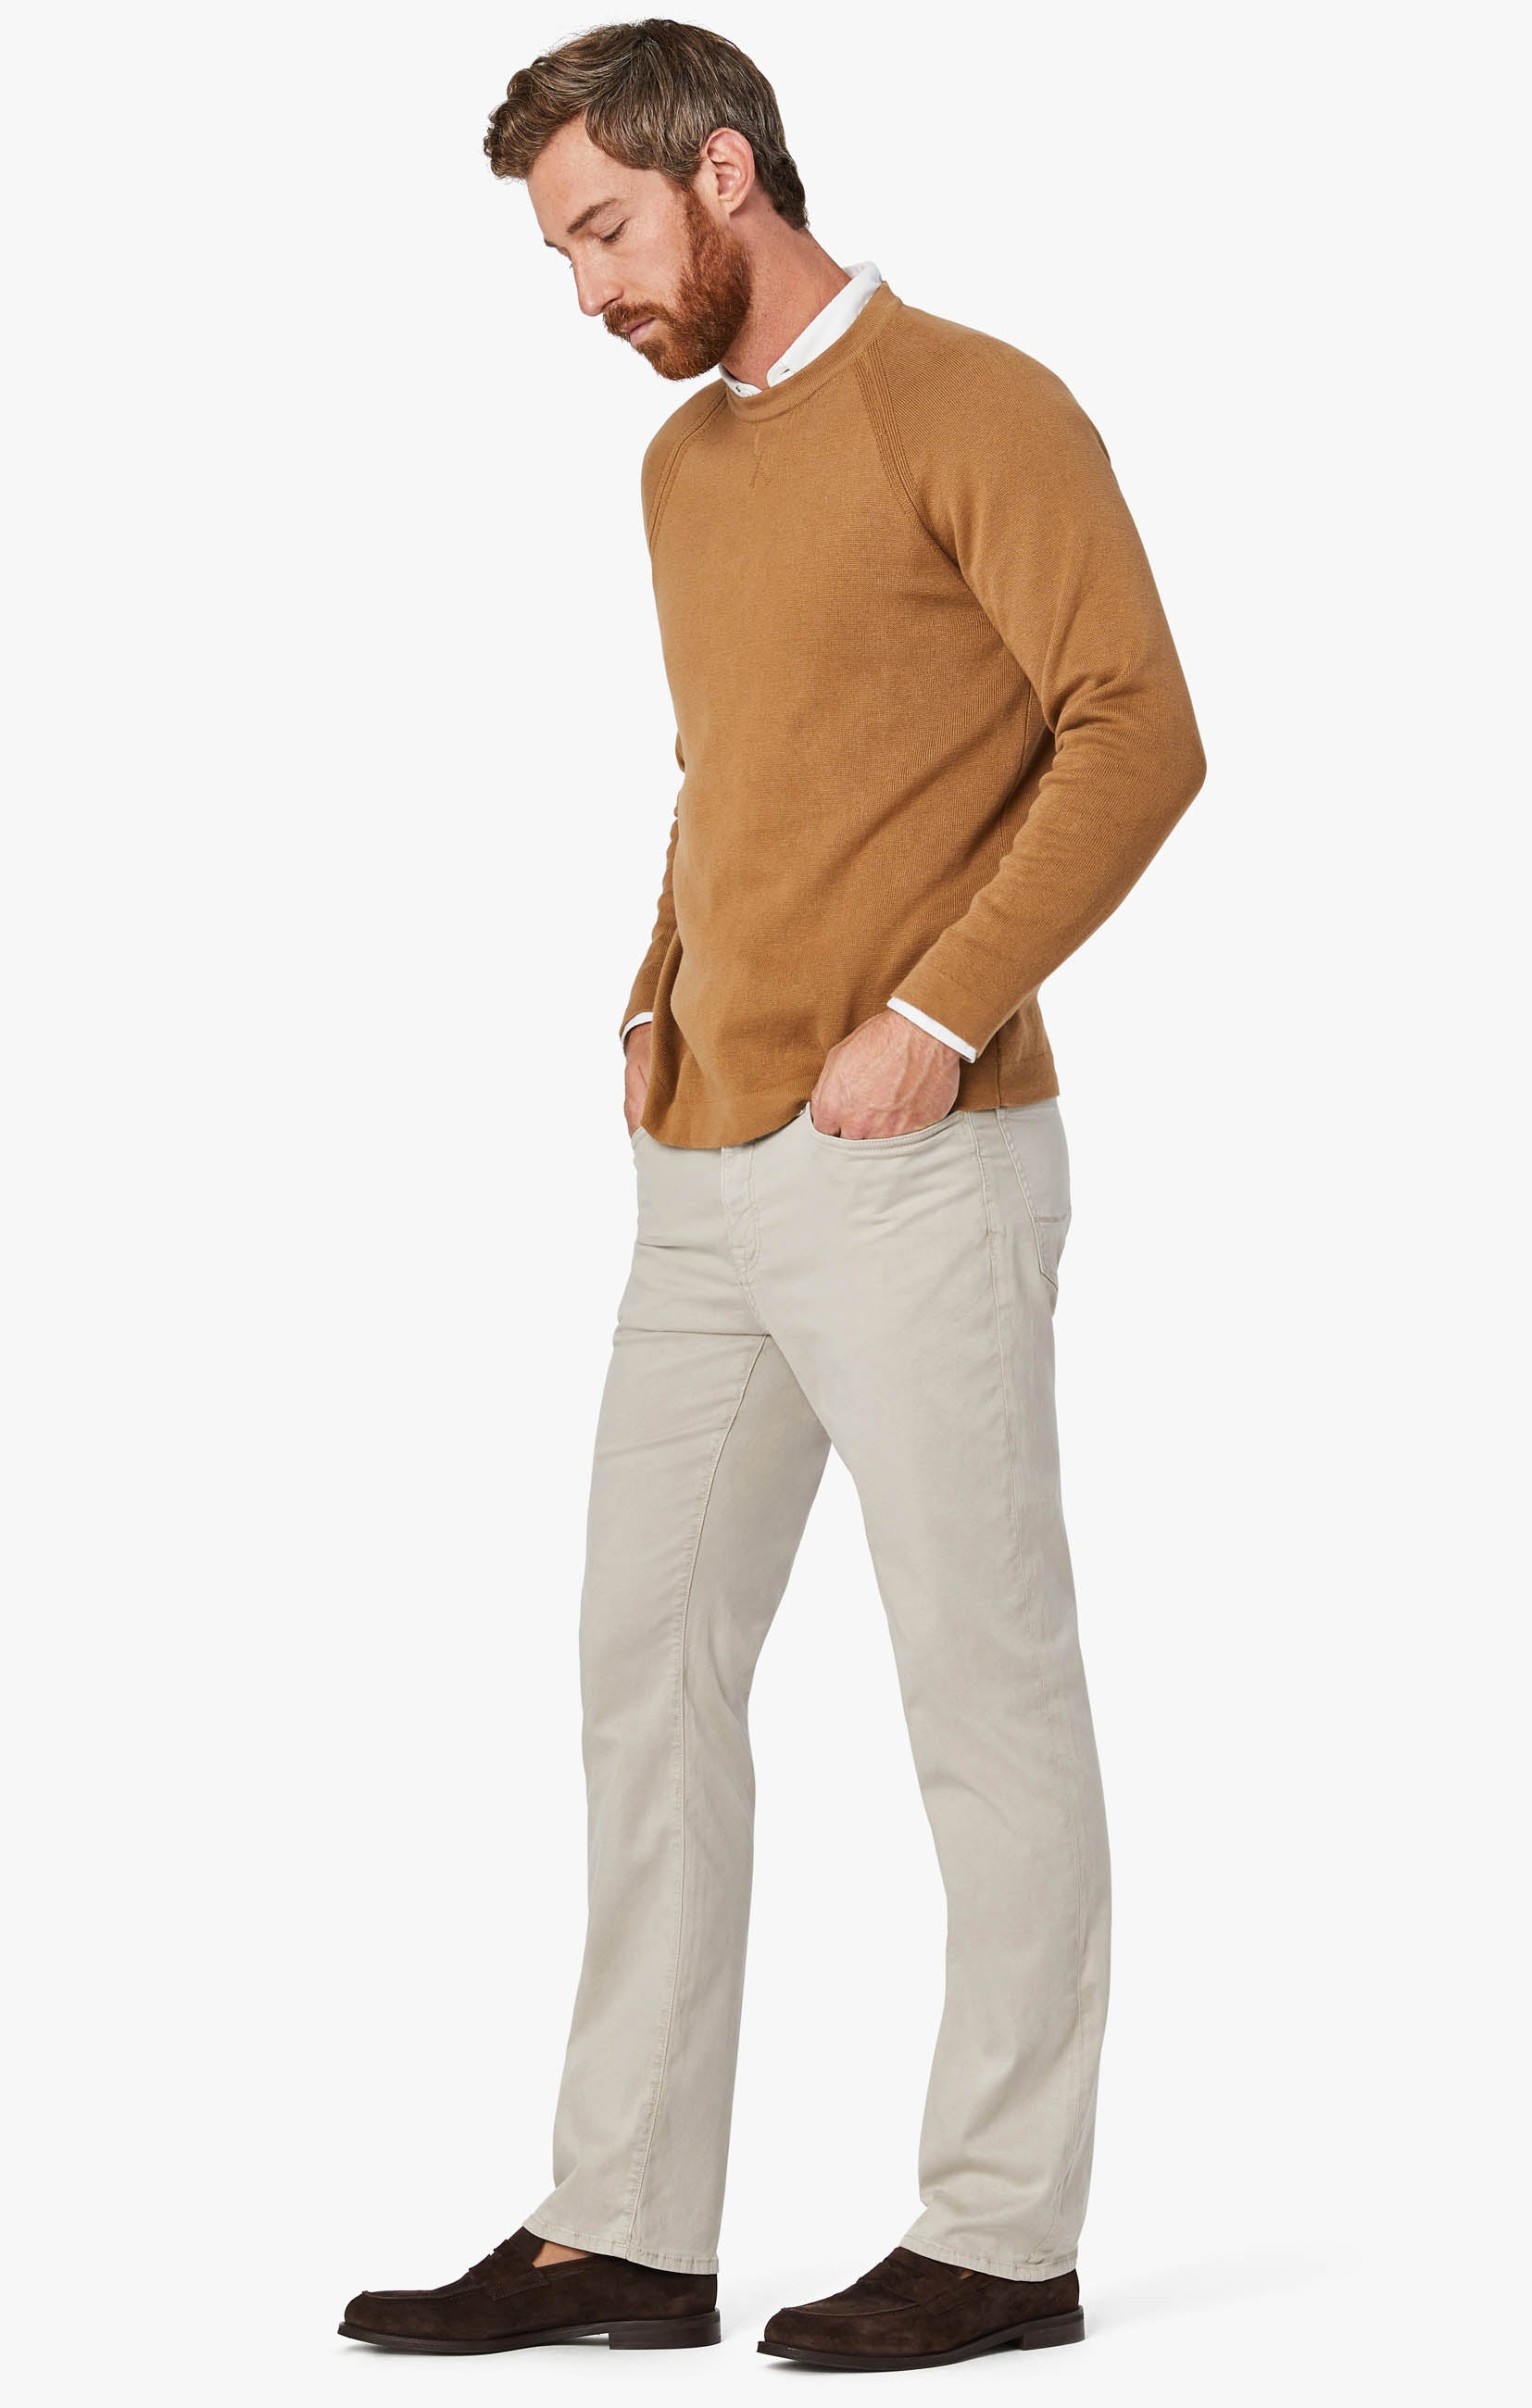 Charisma Relaxed Straight Leg Pants in Dawn Twill Image 4